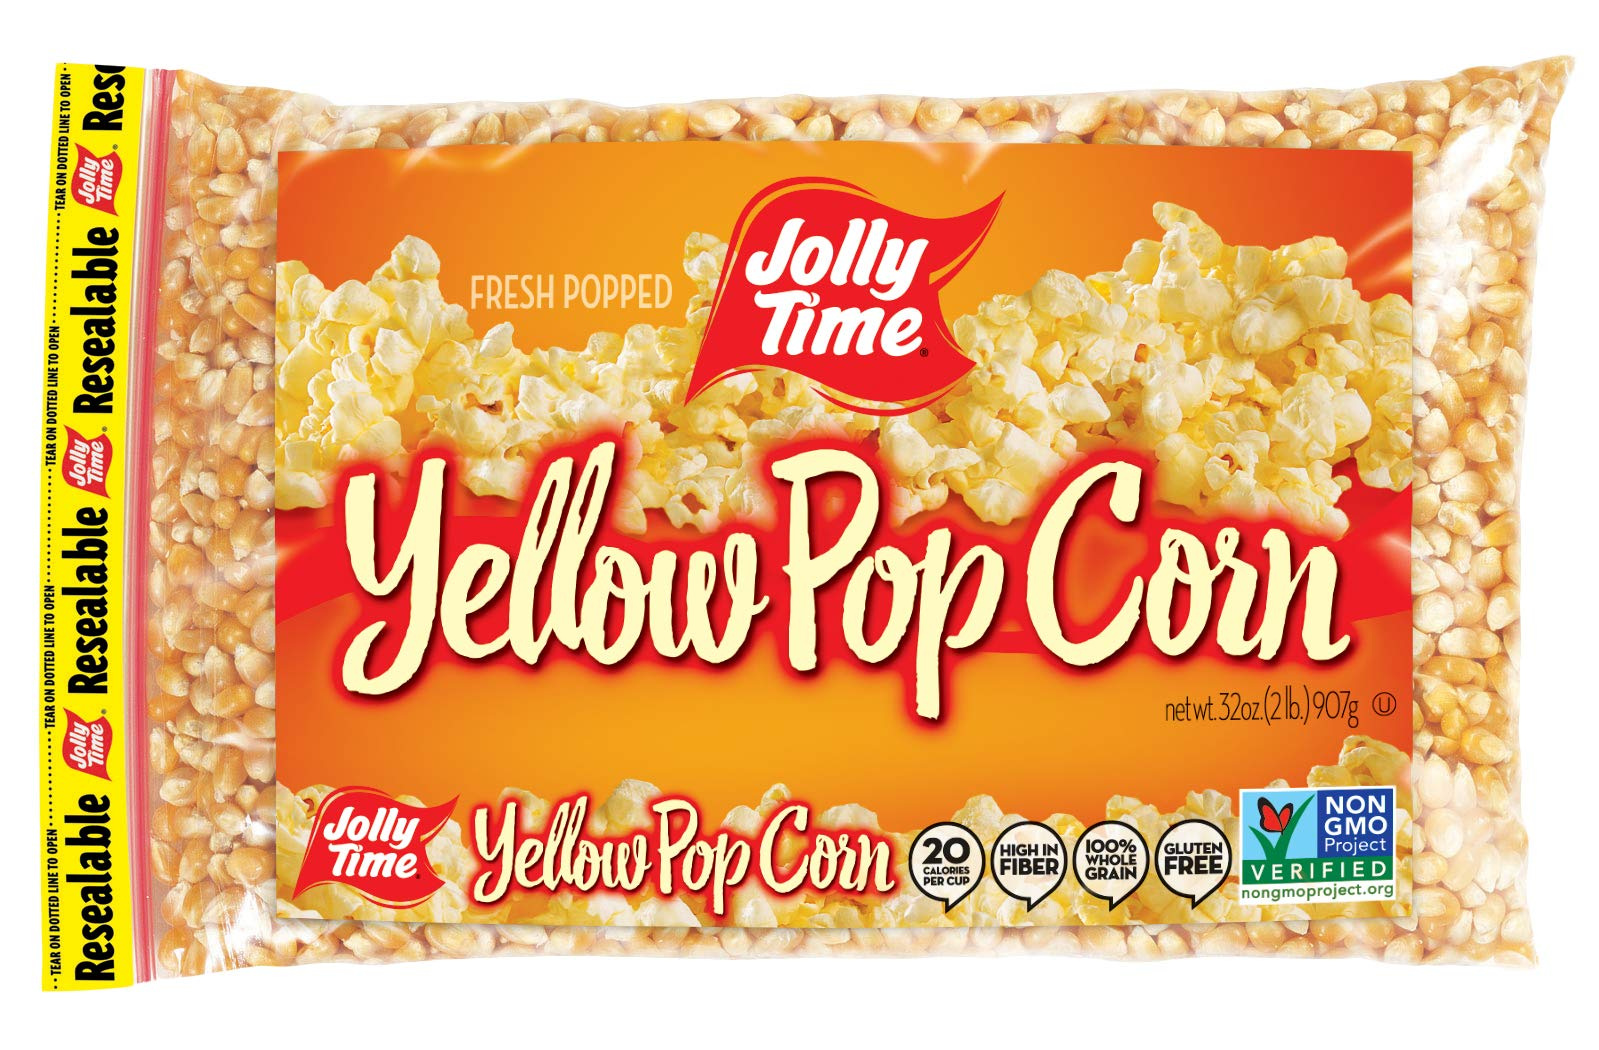 JOLLY TIME Gourmet Unpopped Popcorn Kernels, Non-GMO Yellow Popping Corn, 2 lb. Bags (Pack of 12) by Jolly Time